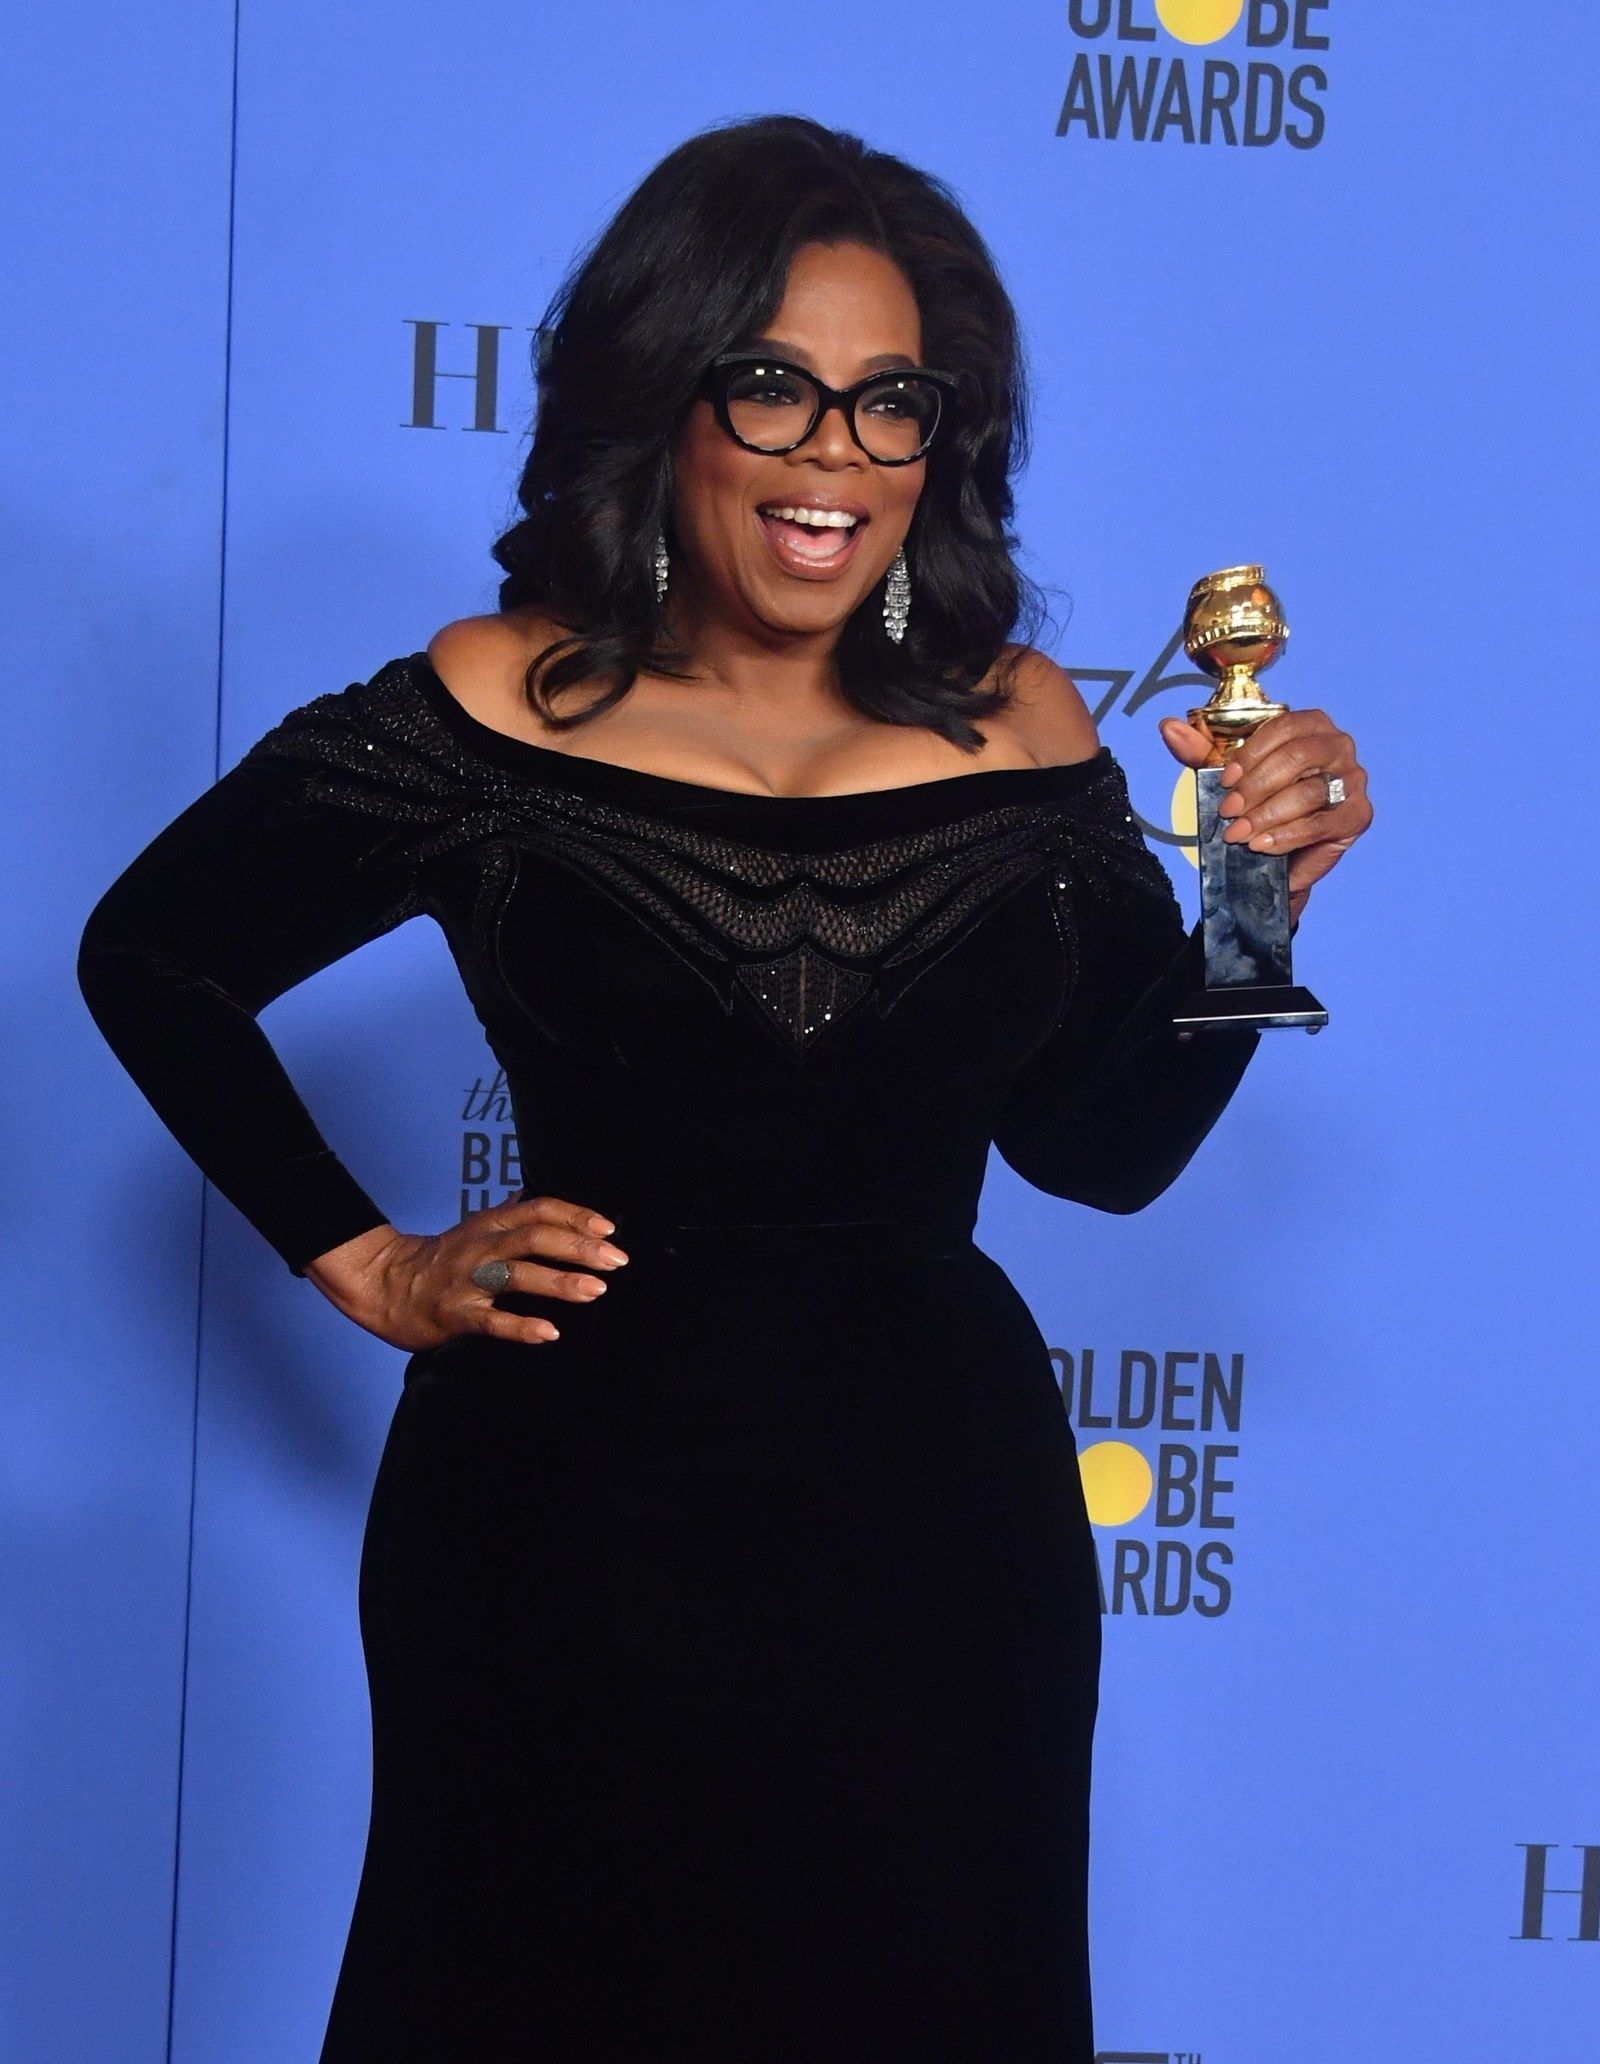 Trump says he would beat Oprah in 2020